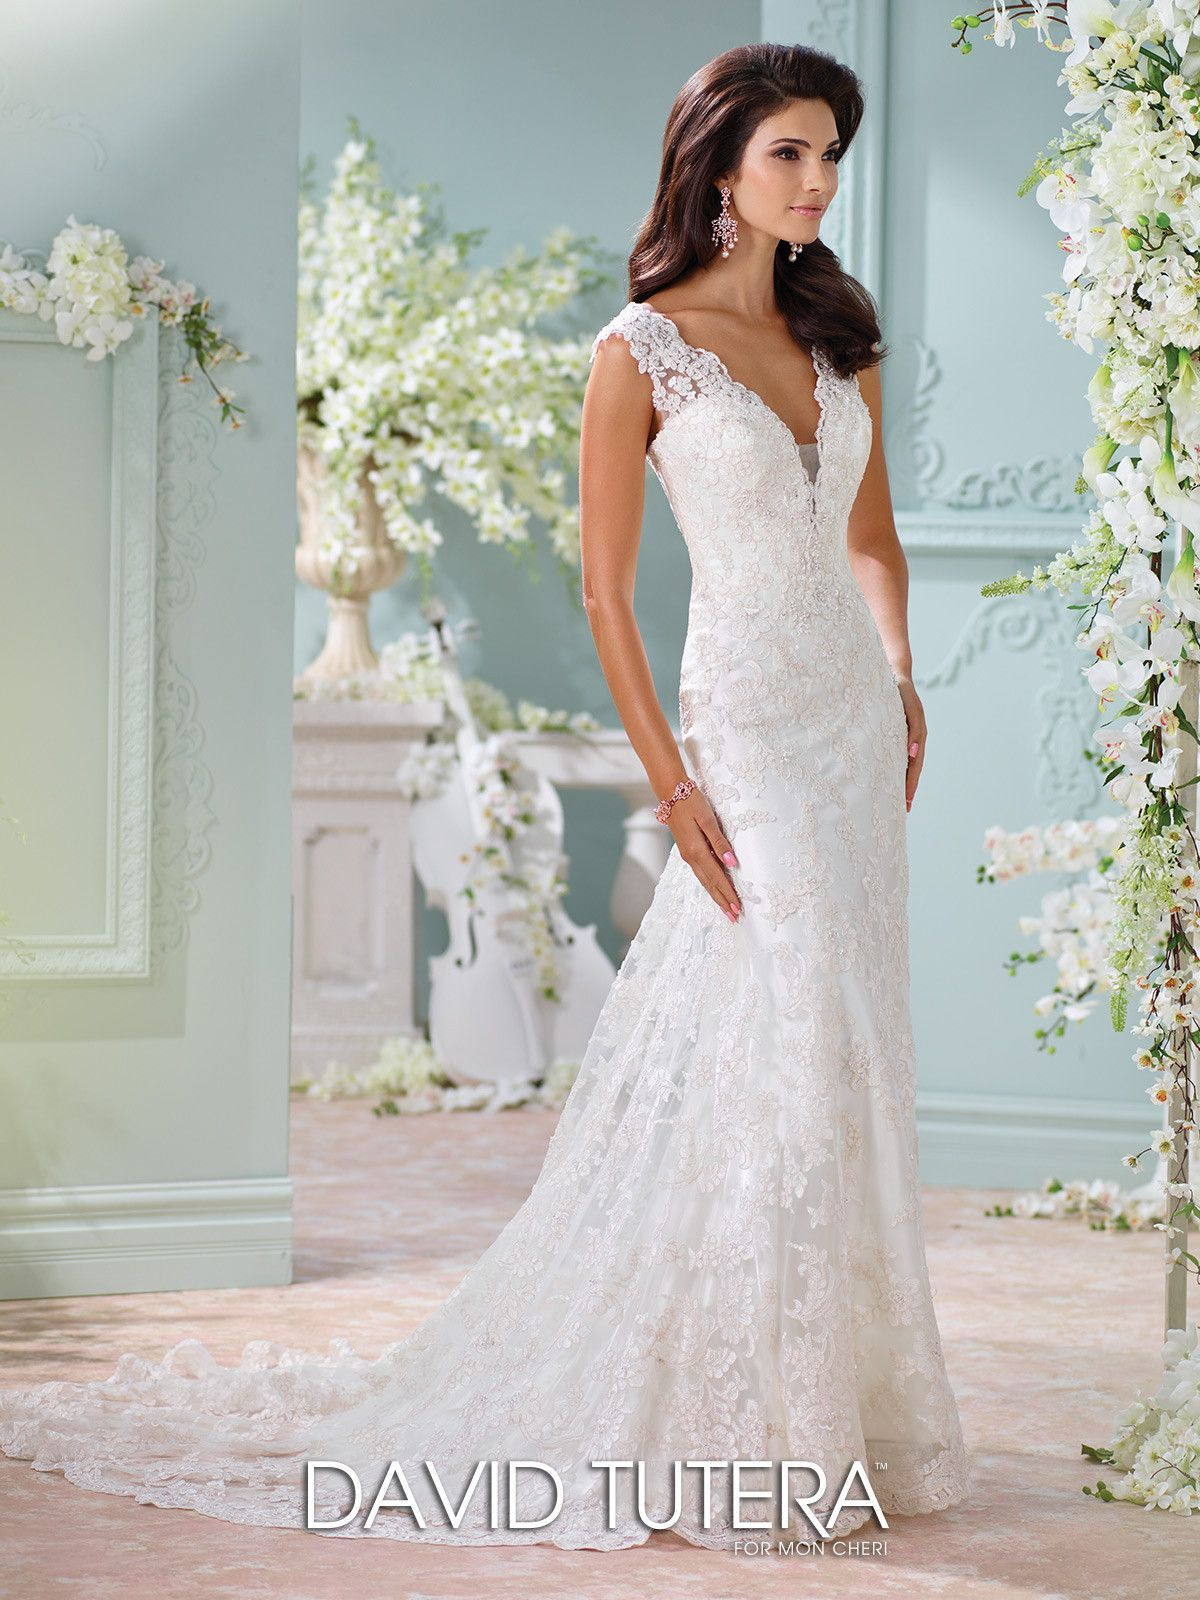 David tutera dayton all dressed up bridal gown david